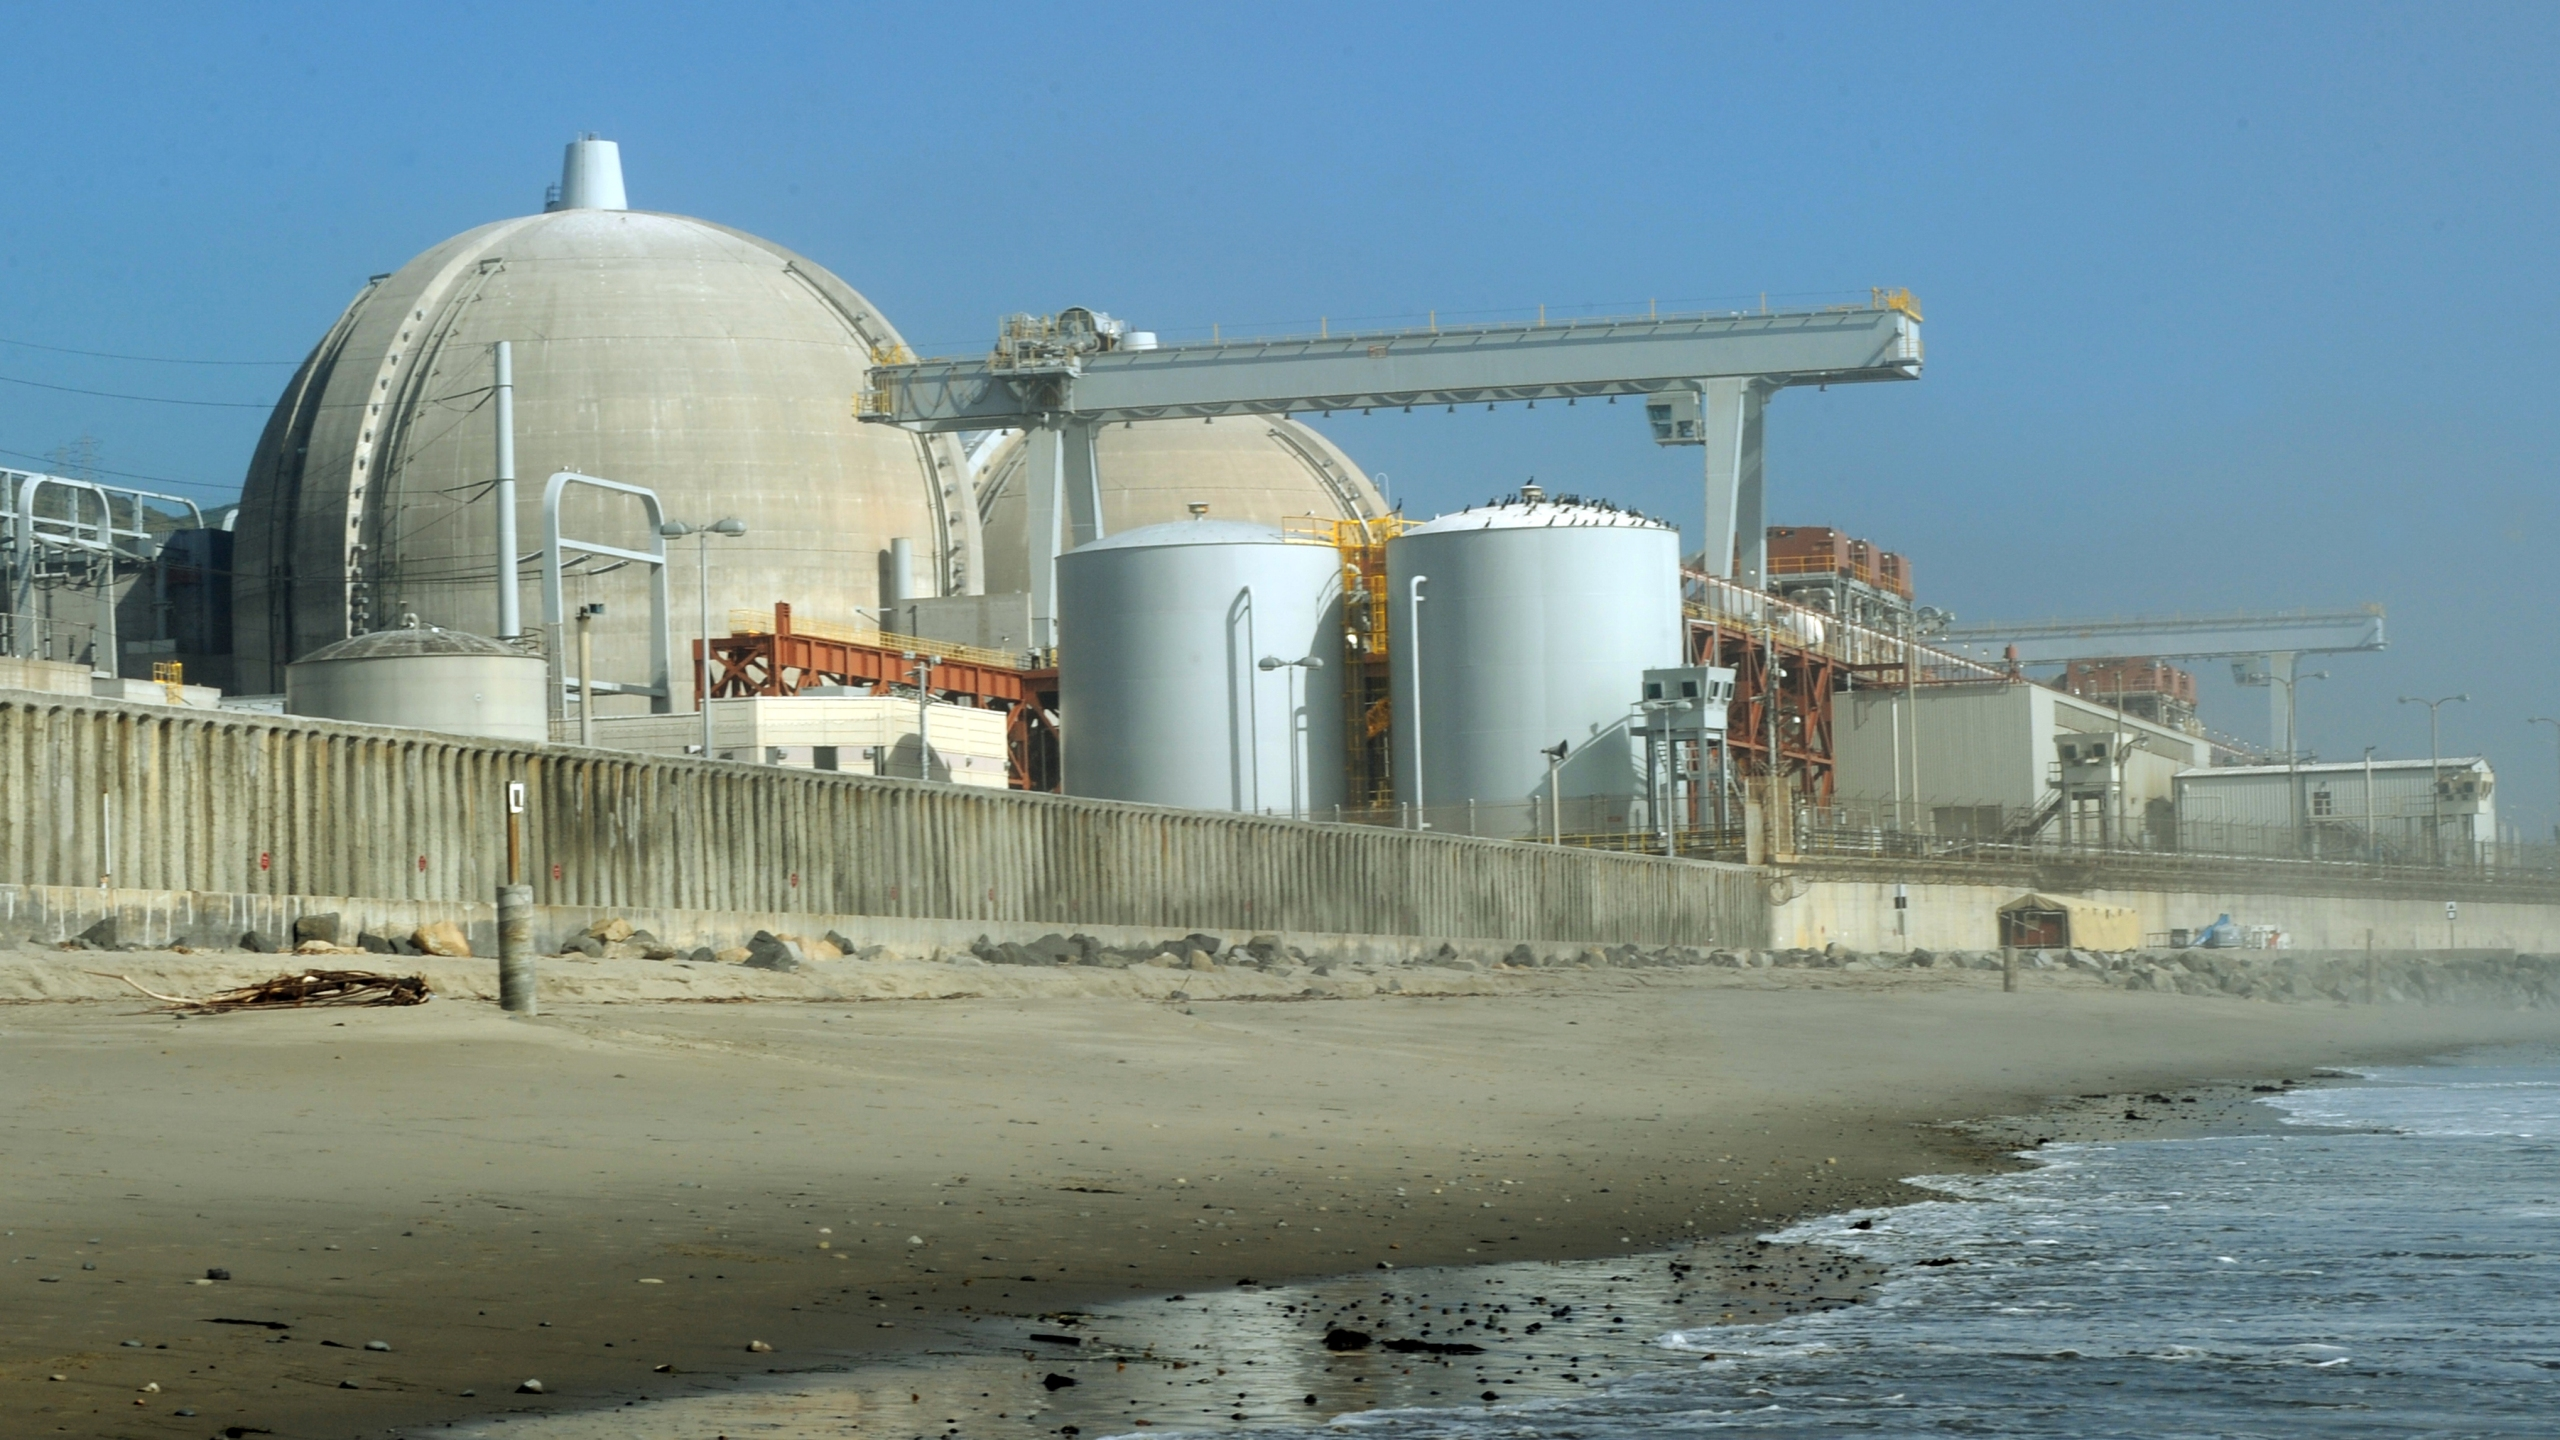 View of the San Onofre Nuclear Power Plant in north San Diego County on March 15, 2011. (Credit: MARK RALSTON/AFP/Getty Images)